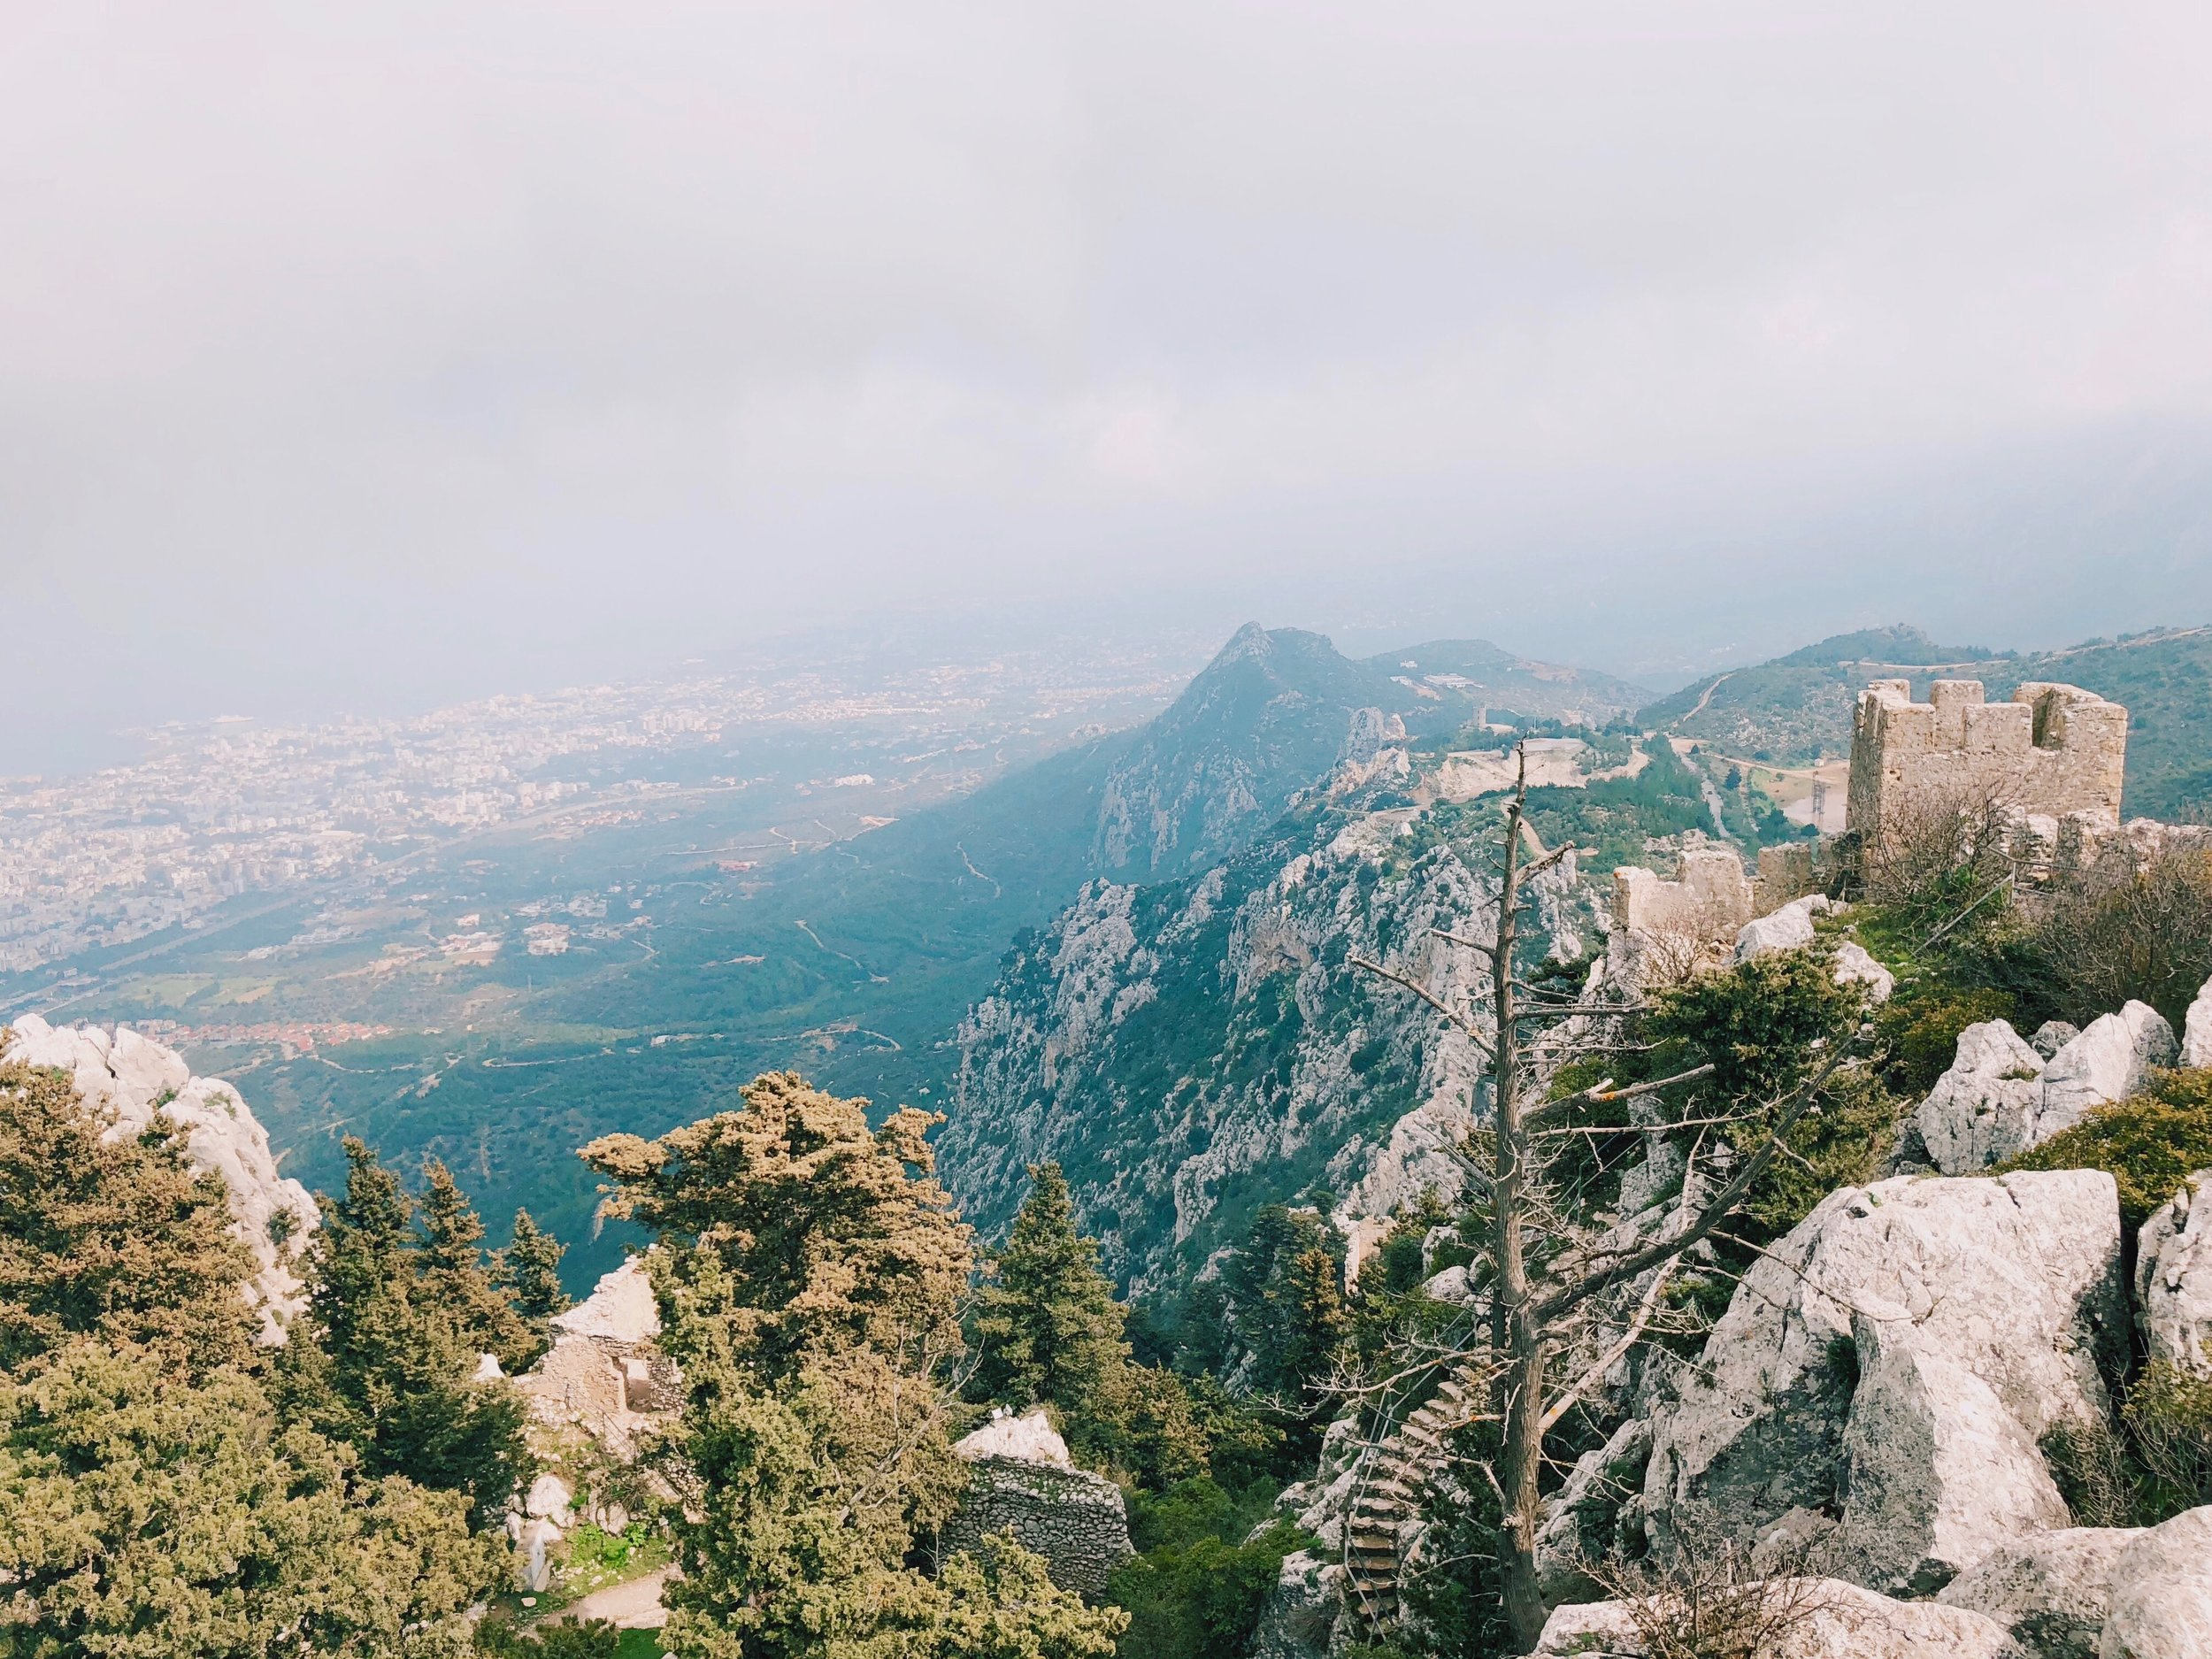 The view from the highest part of Saint Hilarion Castle.